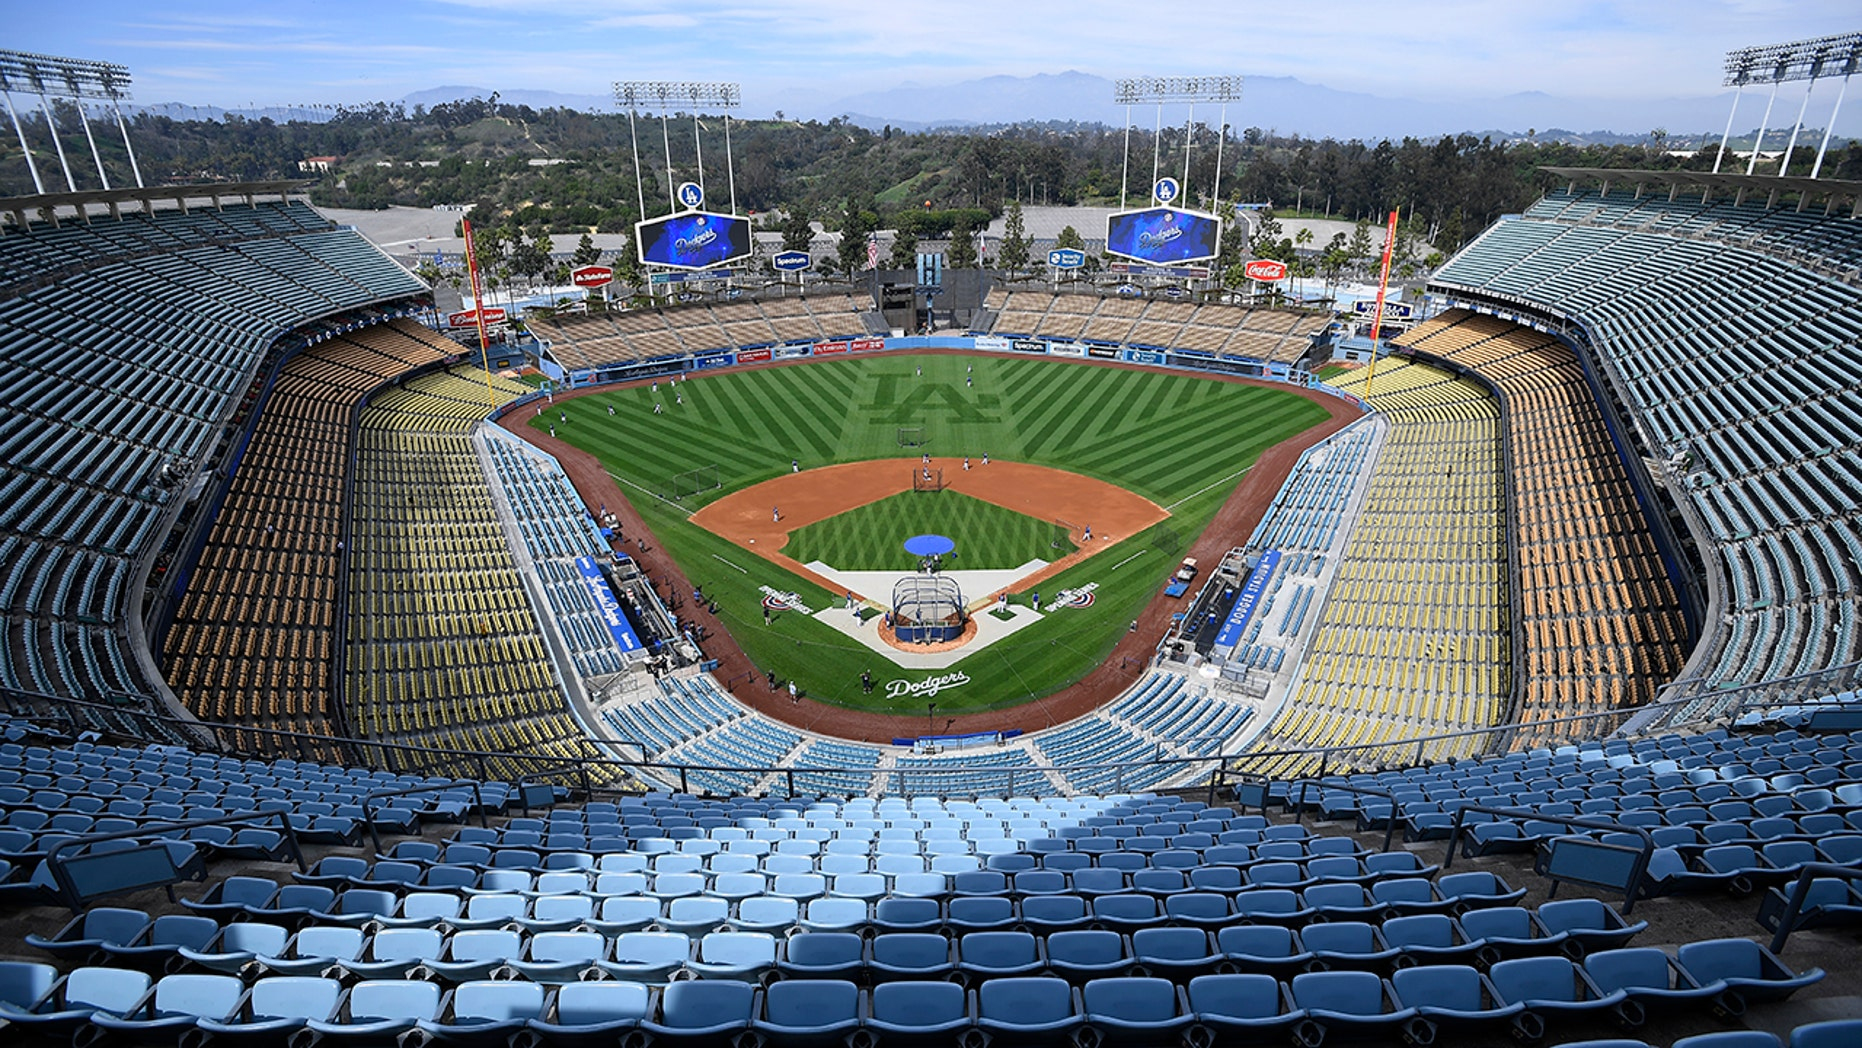 Woman, 79, Died After Being Struck By Foul Ball At Dodger Stadium